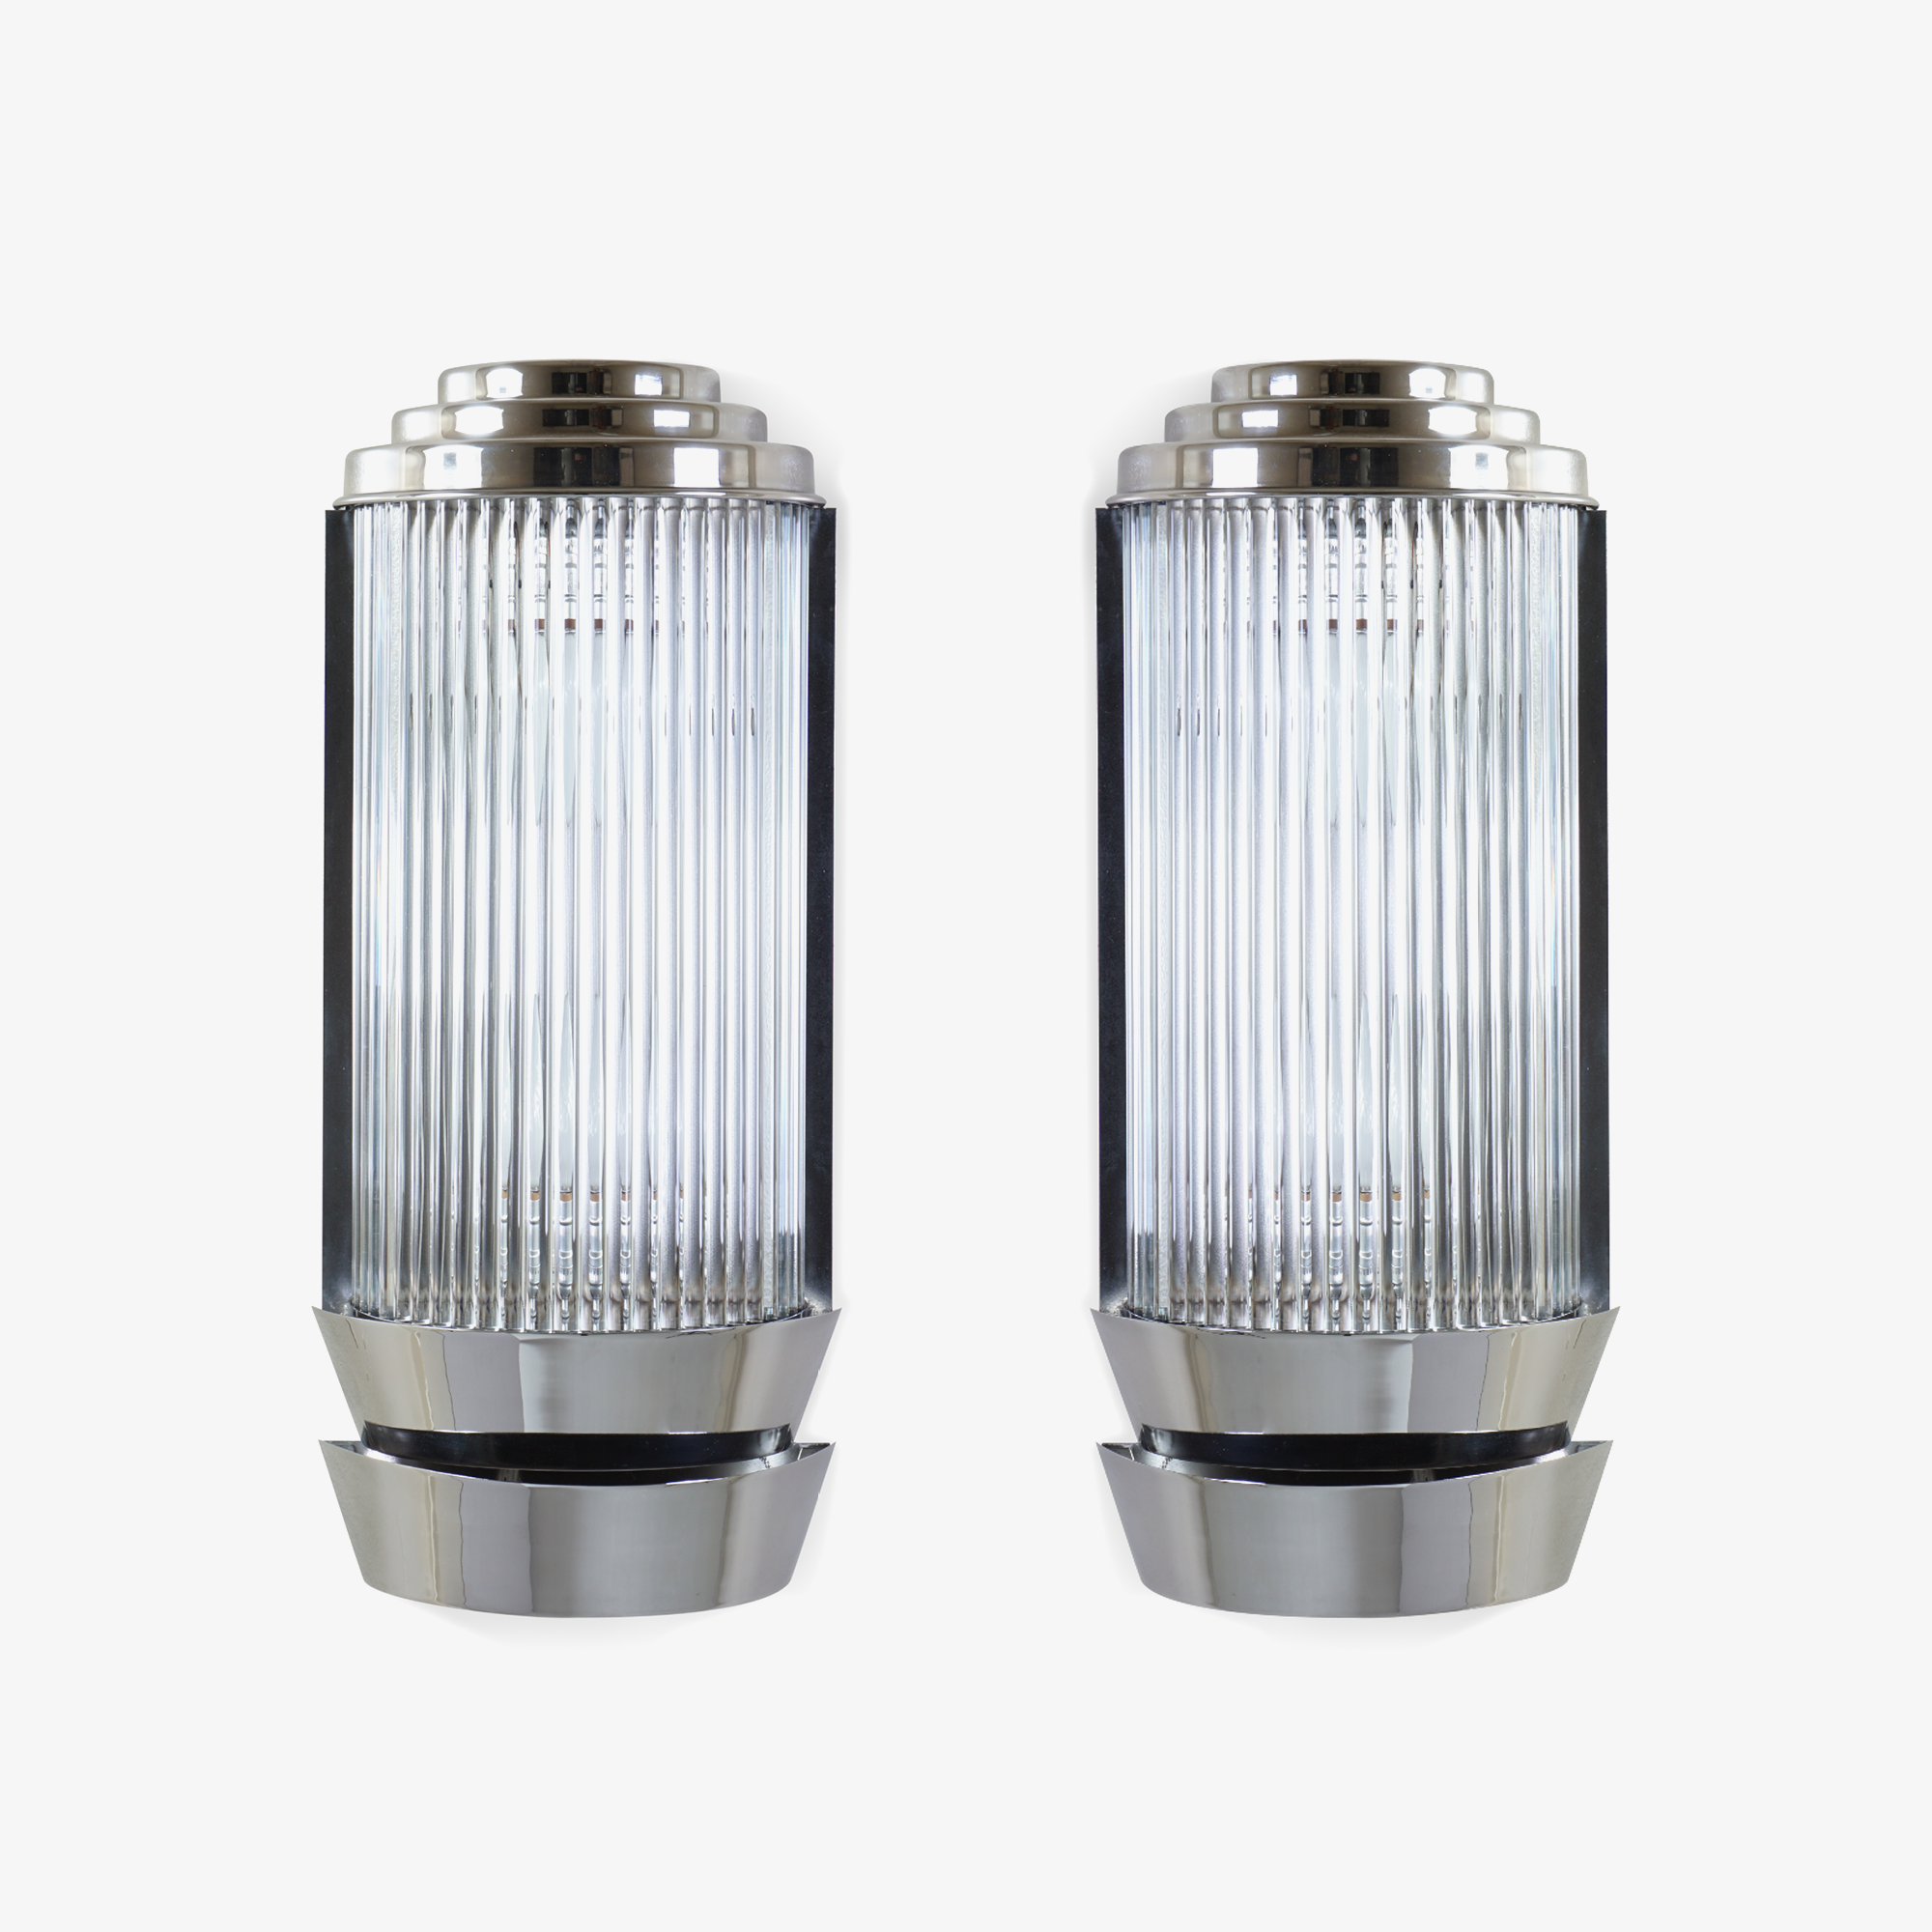 Art-Deco Sconces in Glass & Nickel by Petitot.png